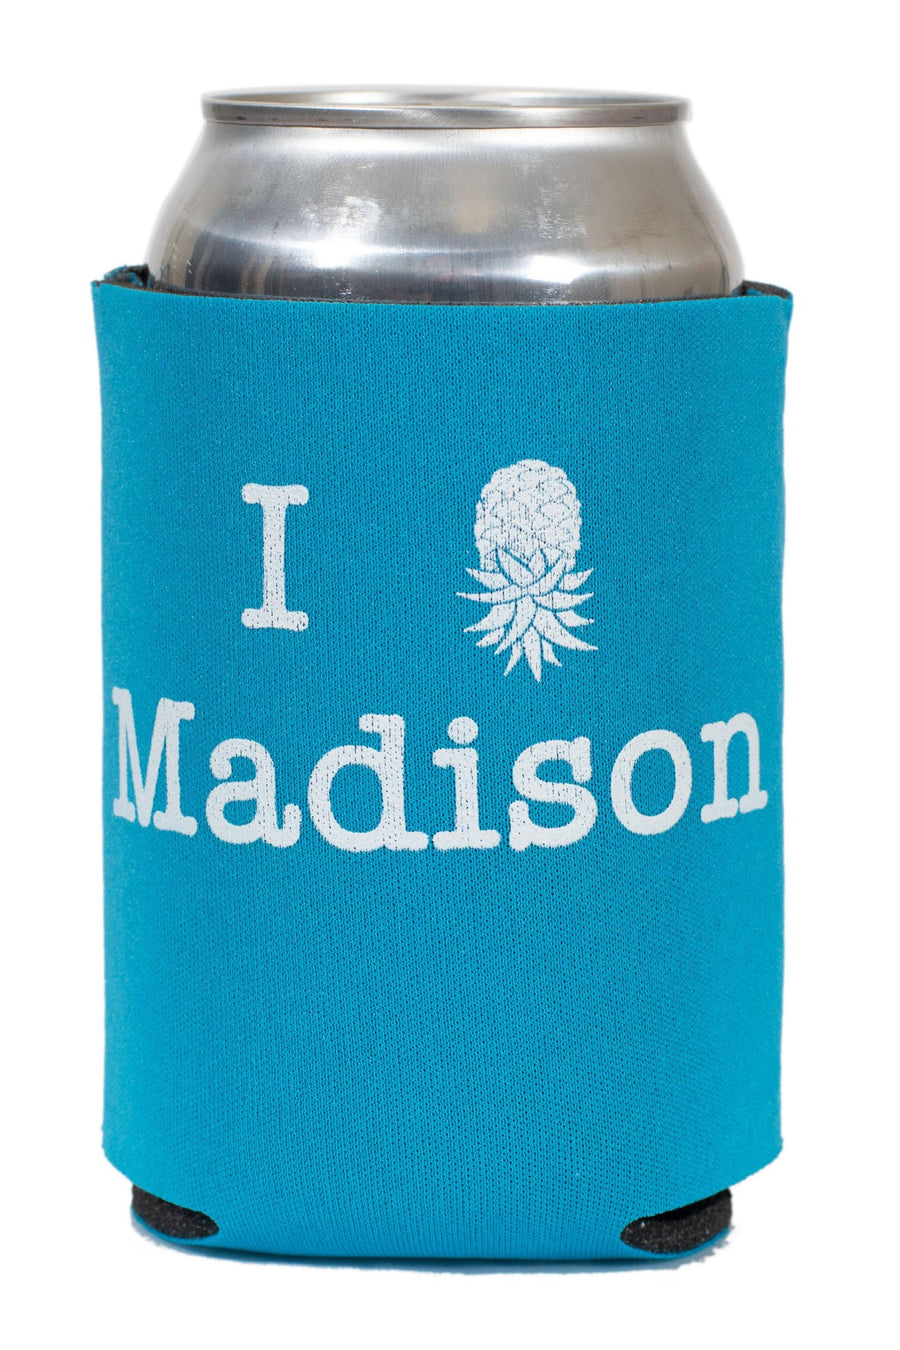 I Pineapple Madison Koozie 2